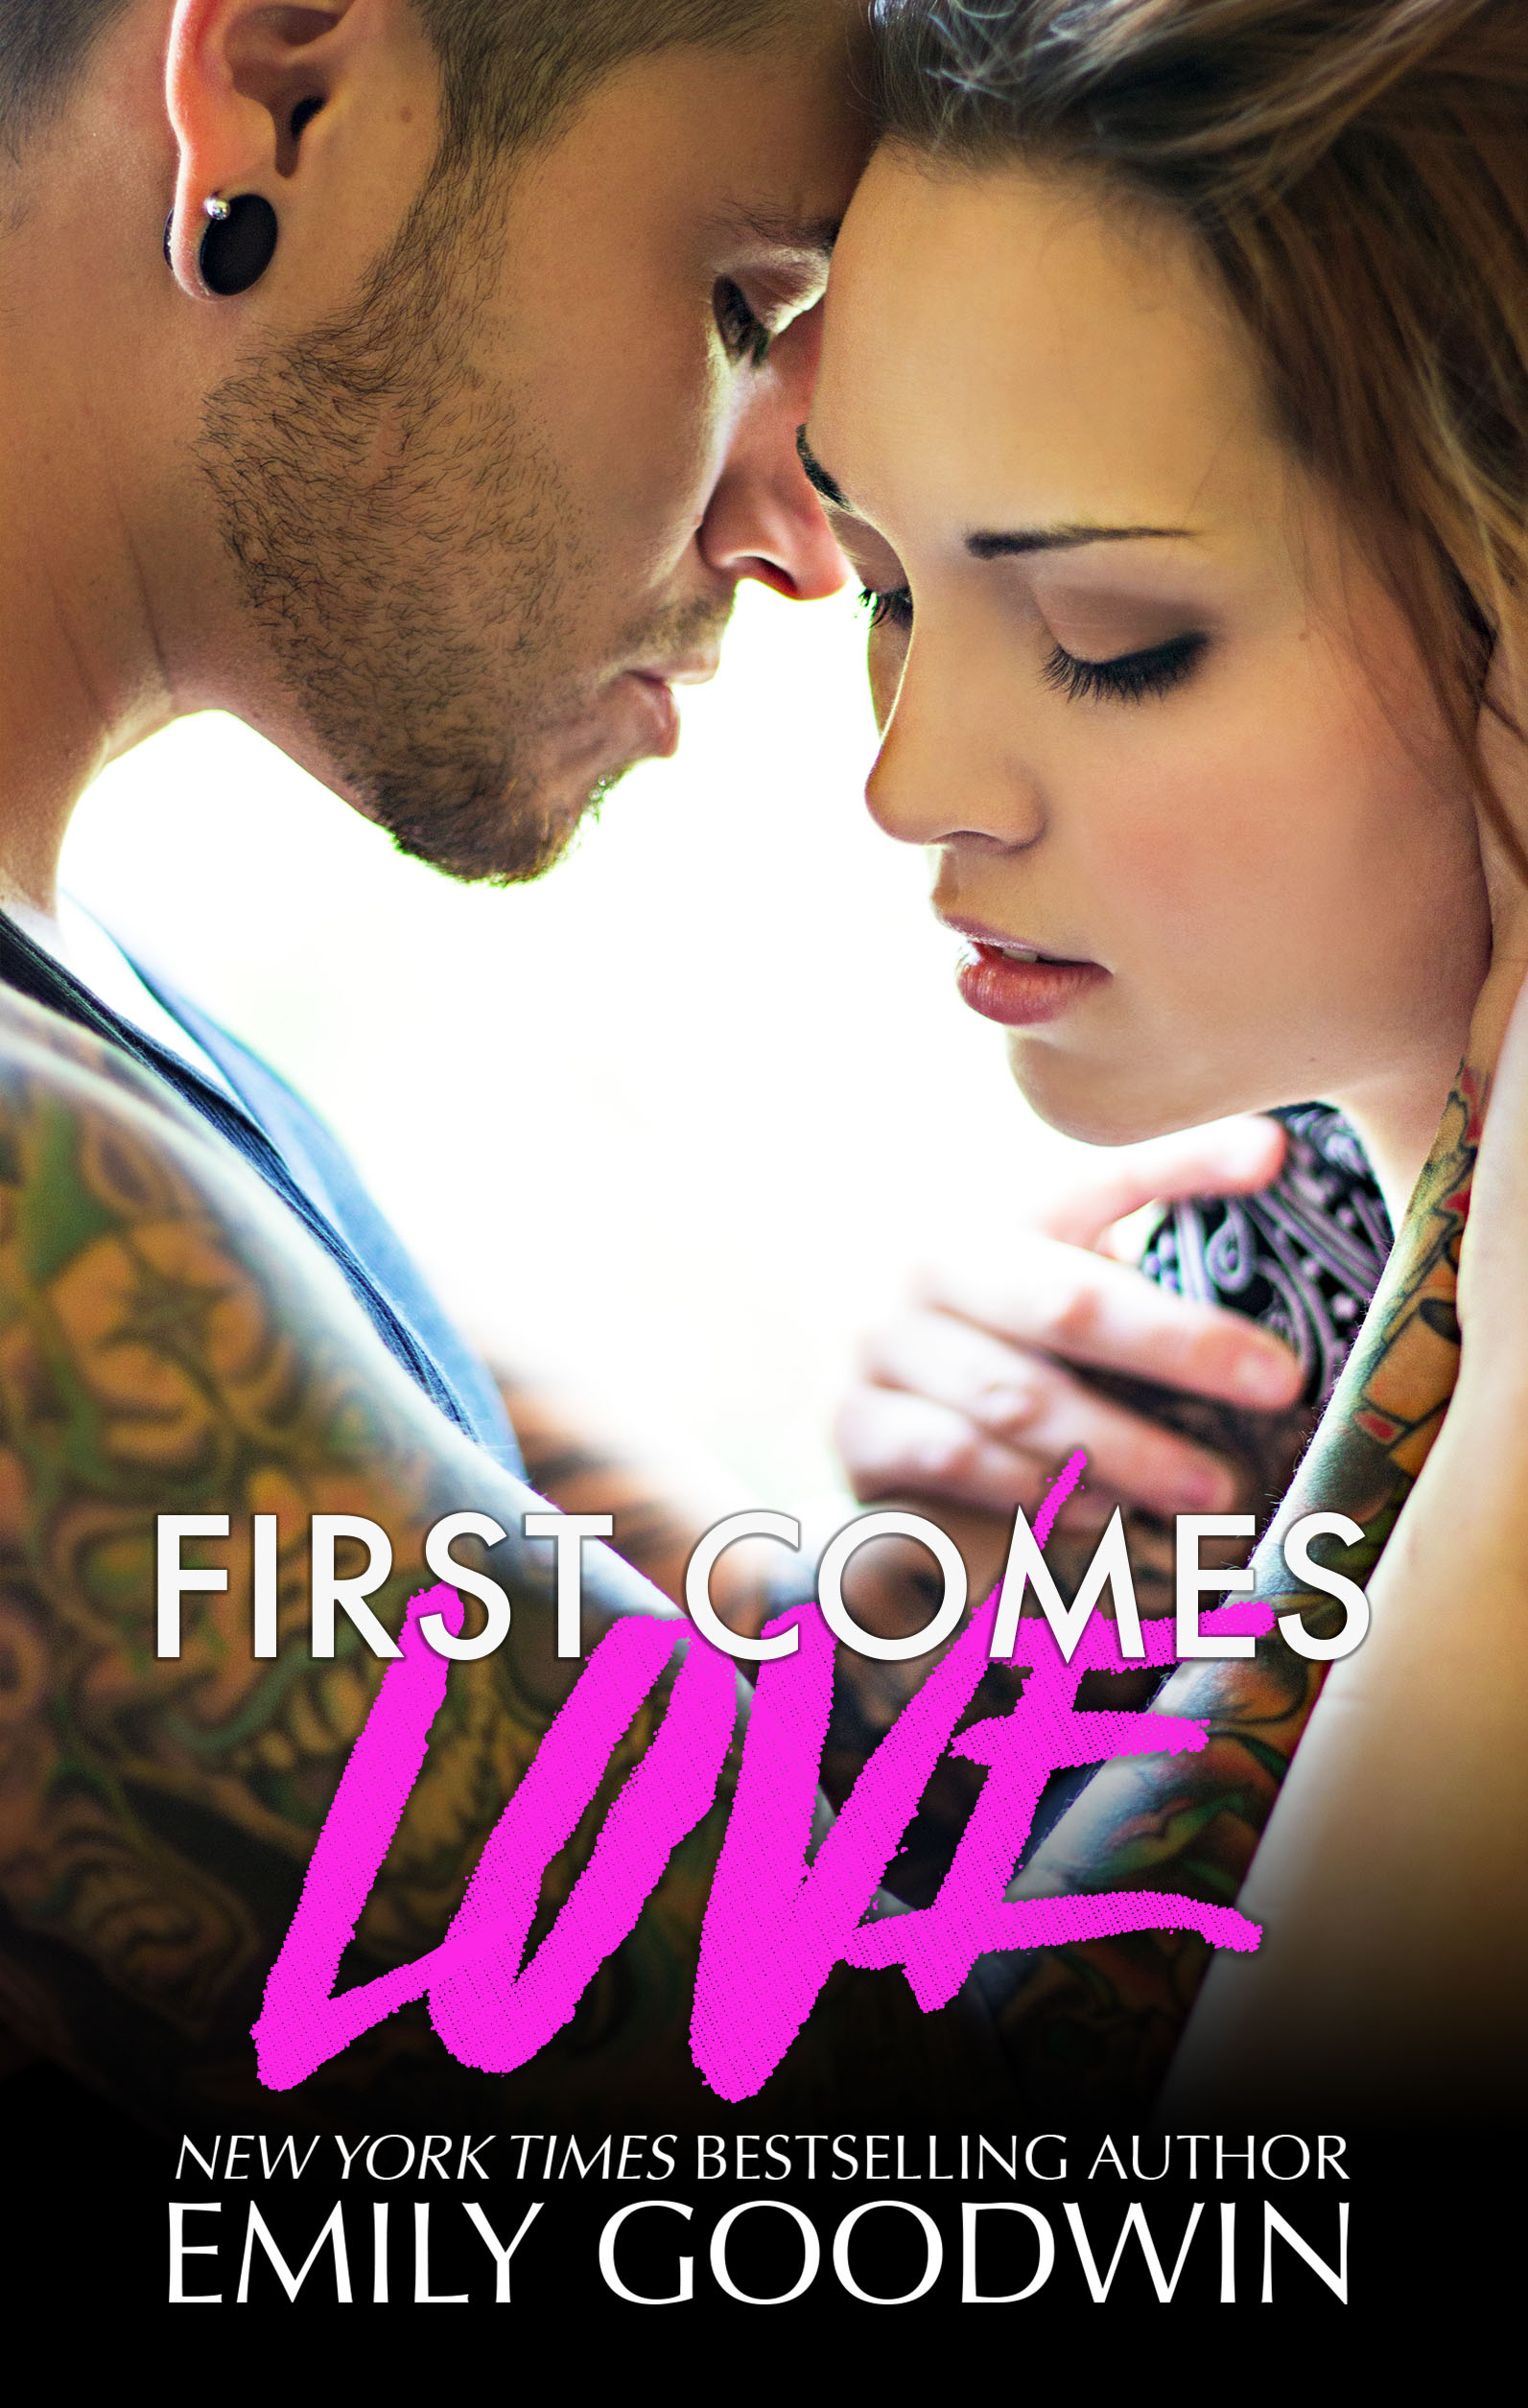 First Comes Love Ebook.jpg